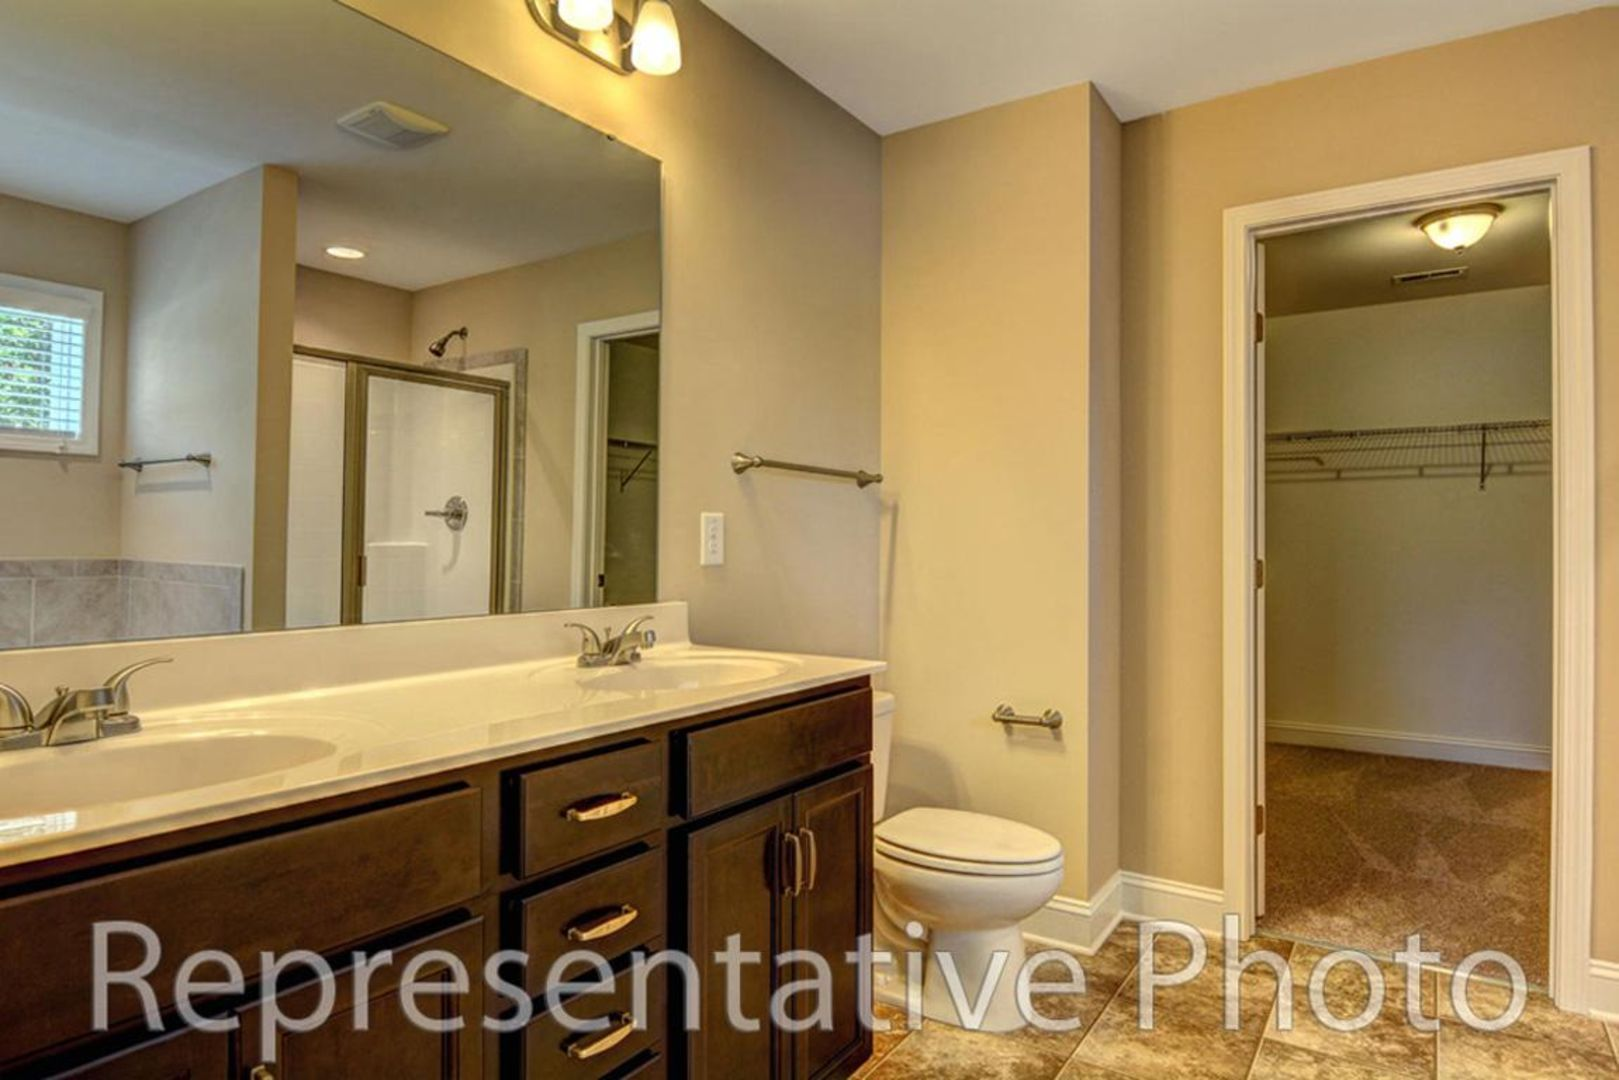 Bathroom featured in the Topsail By HH Homes in Fayetteville, NC